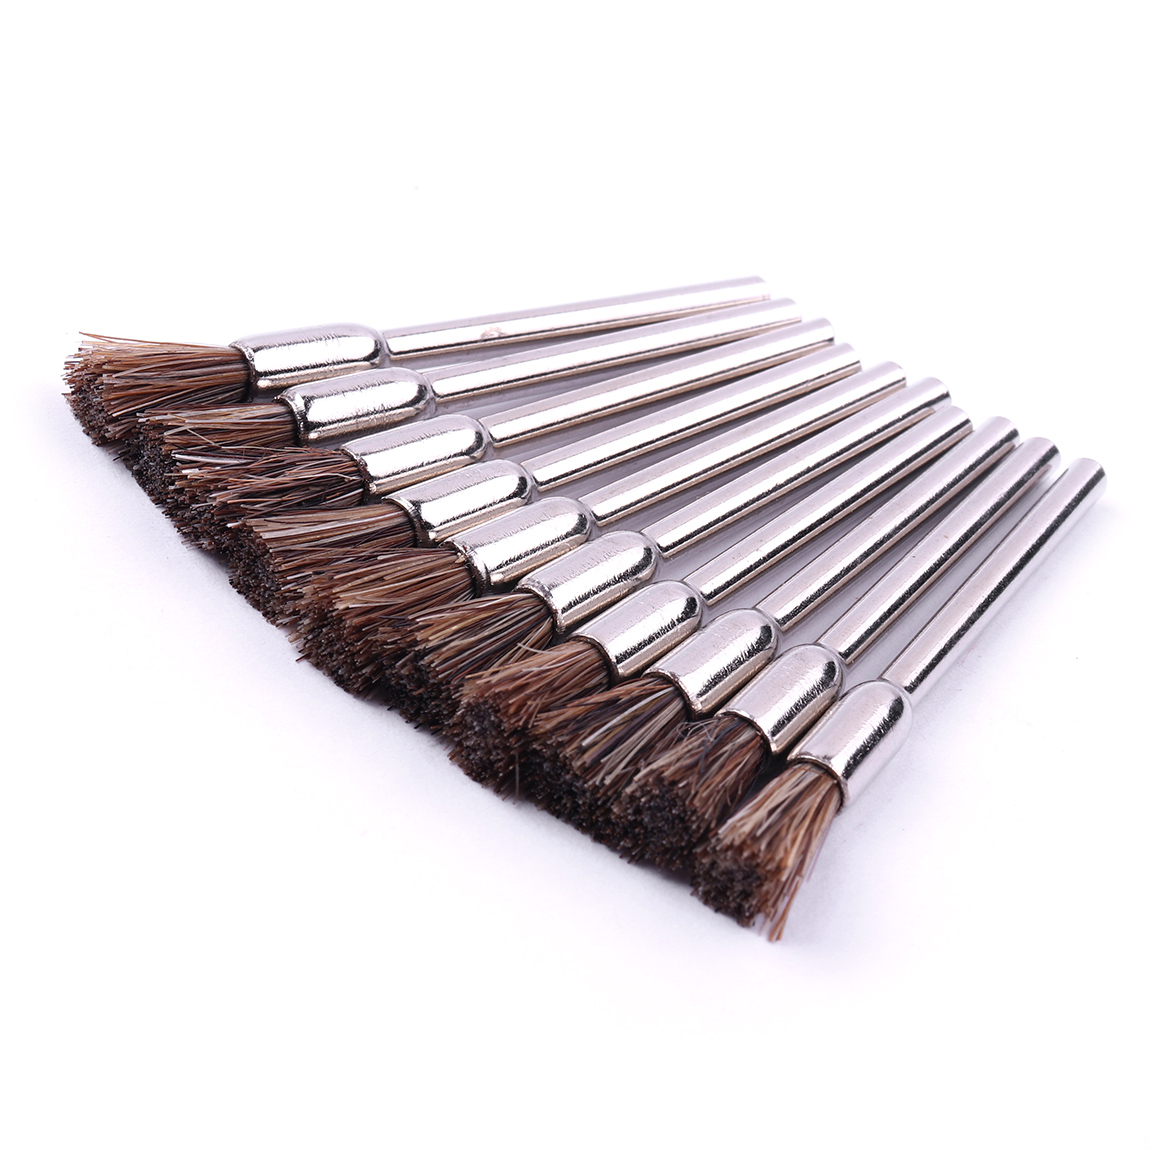 10x CARBON STEEL WIRE BRUSHES for dremel //foredom